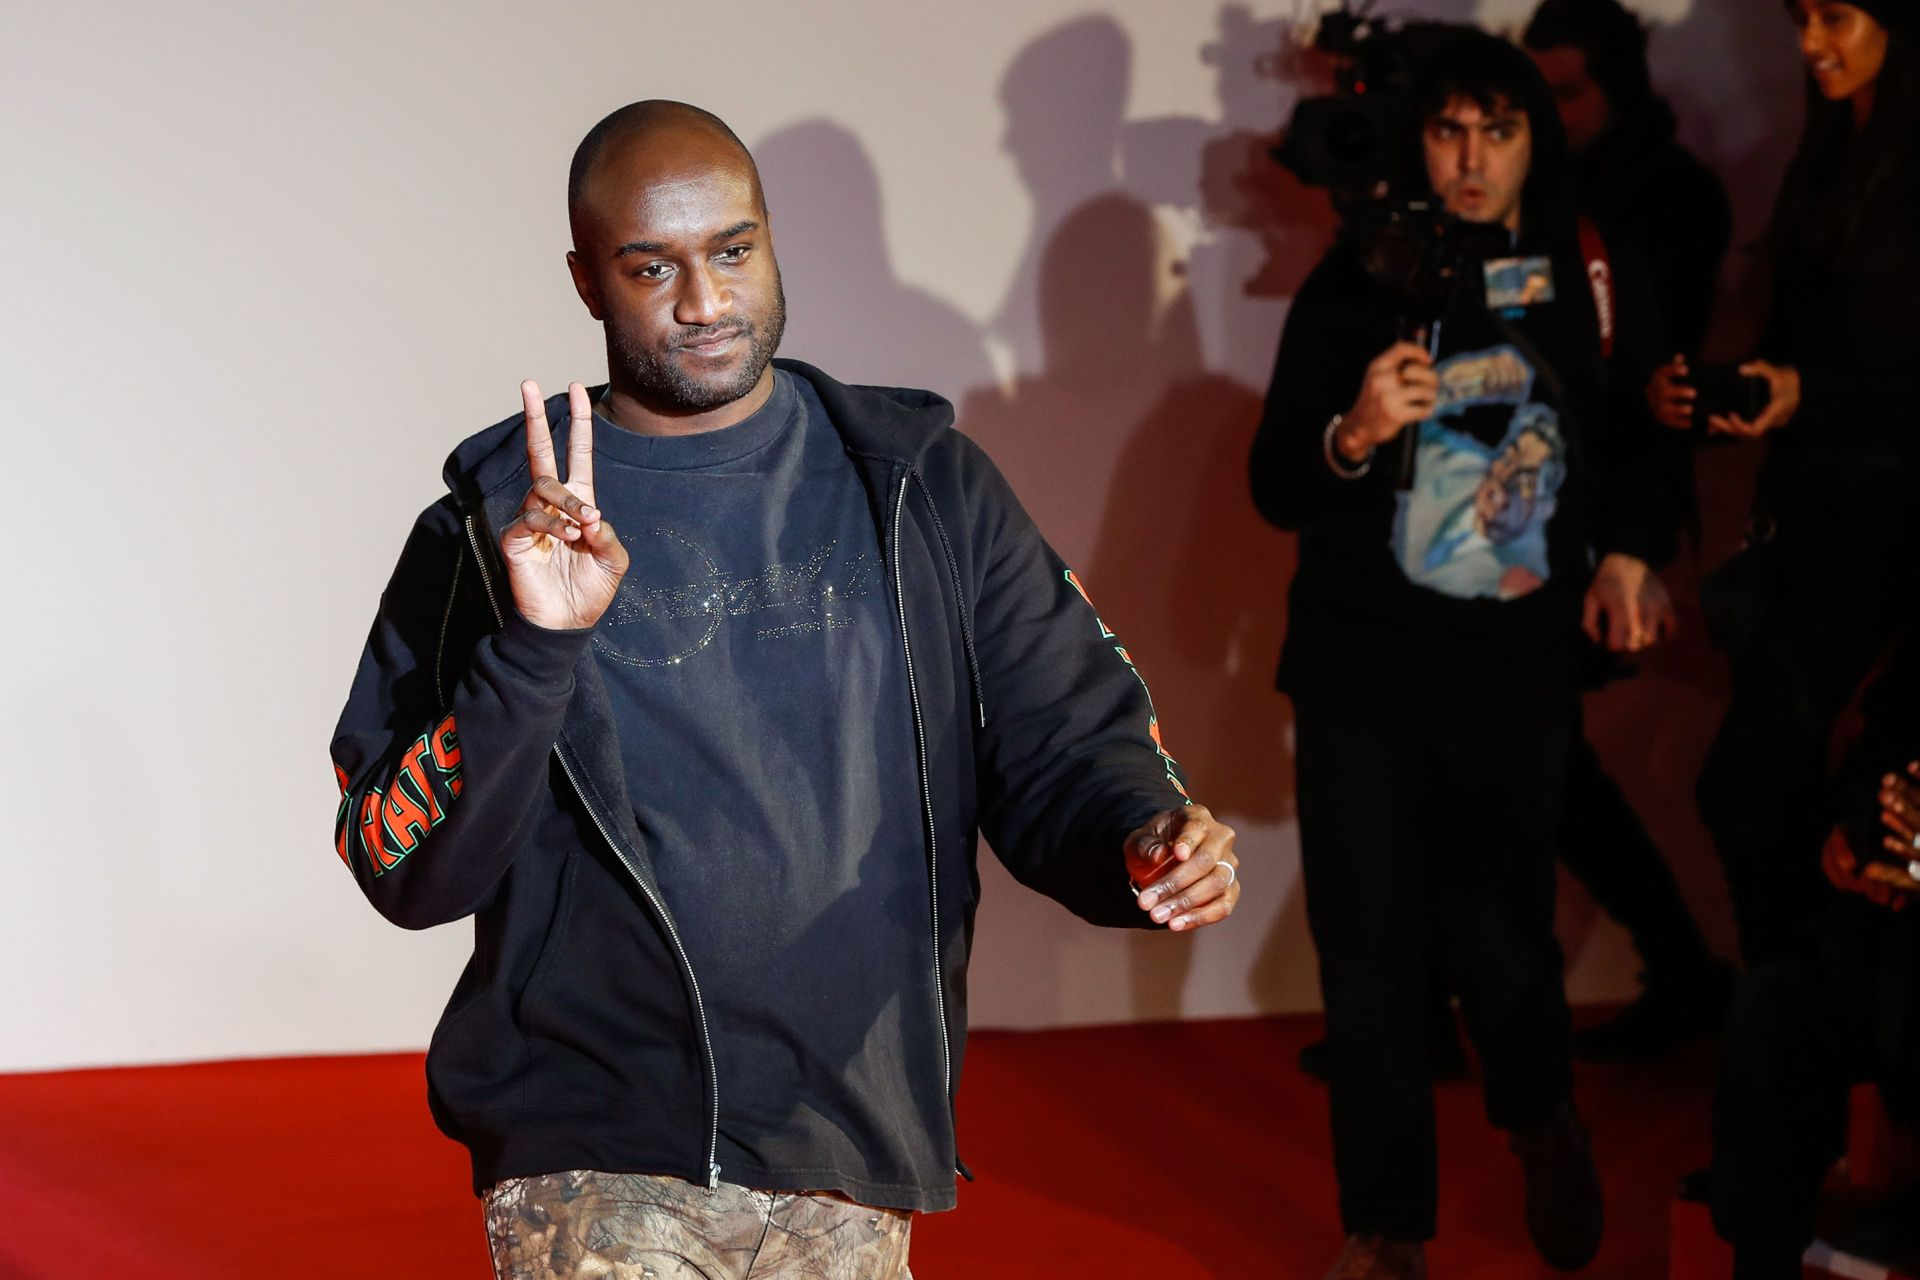 US fashion designer Virgil Abloh acknowledges applause following the presentation of the men's Fall/Winter 2018/2019 collection he designed for Off White, on January 17, 2018 in Paris.  / AFP PHOTO / FRANCOIS GUILLOT